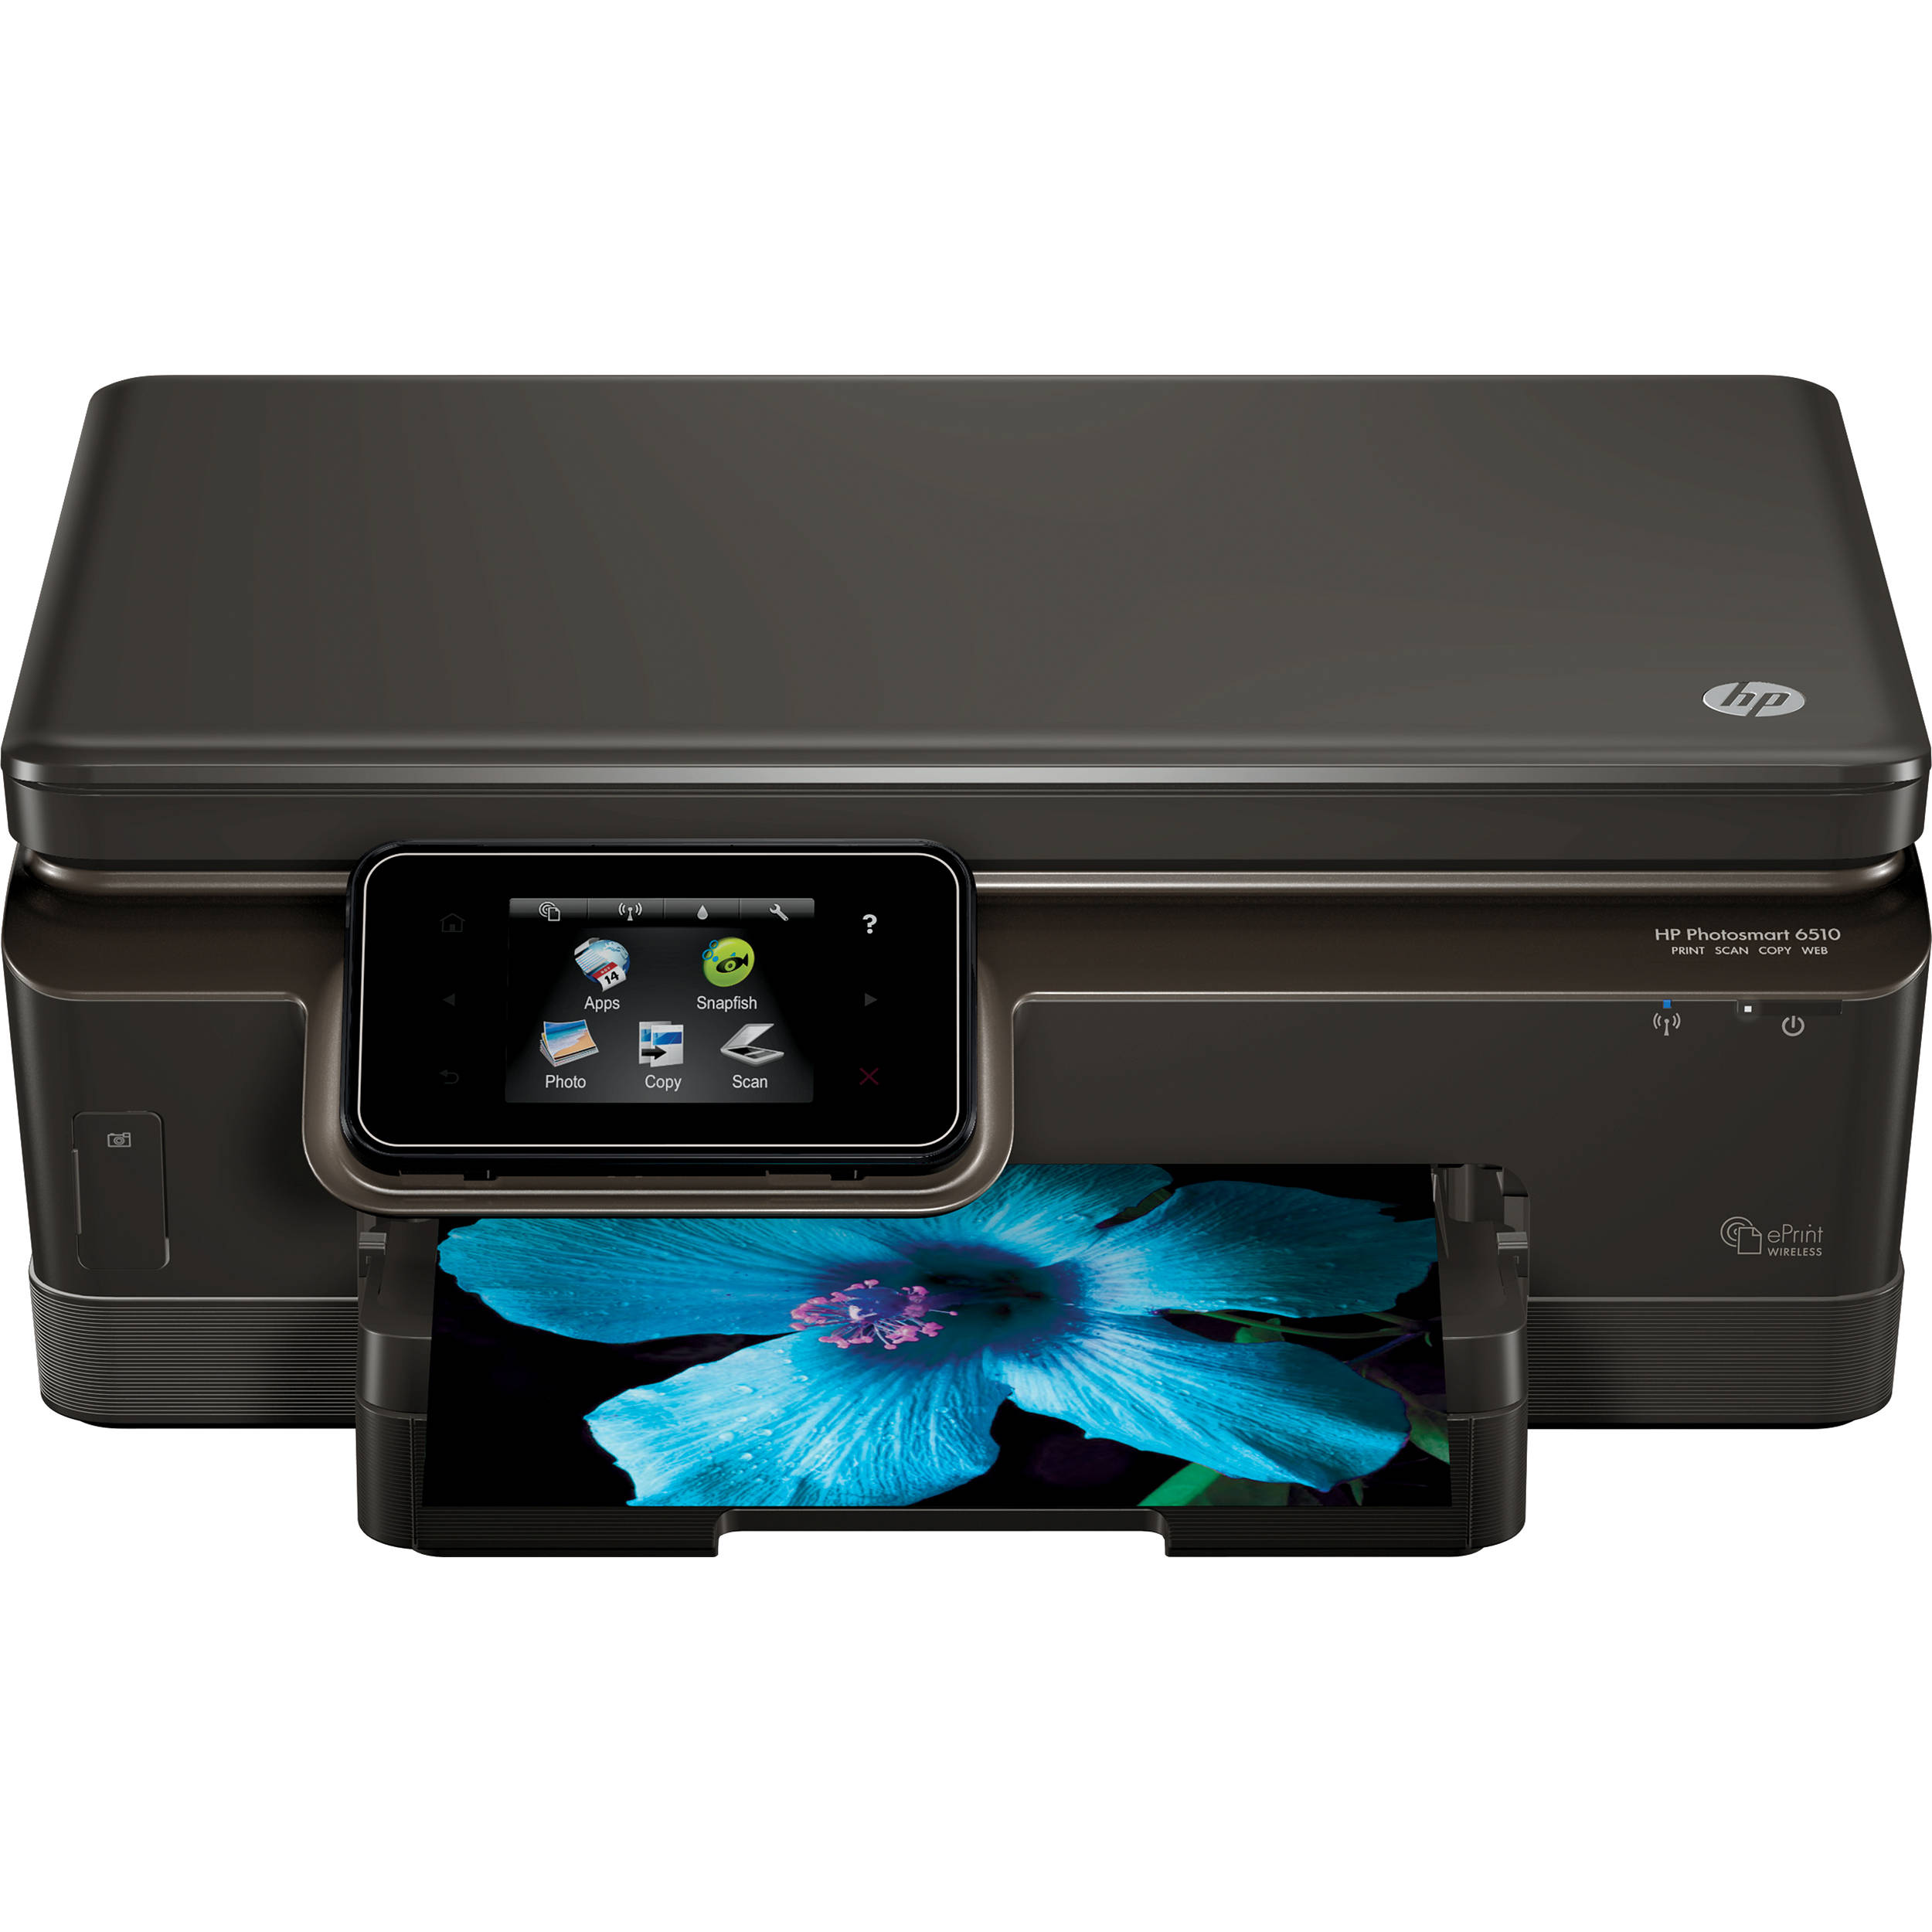 HP Photosmart 6510 E All In One Color Inkjet Printer